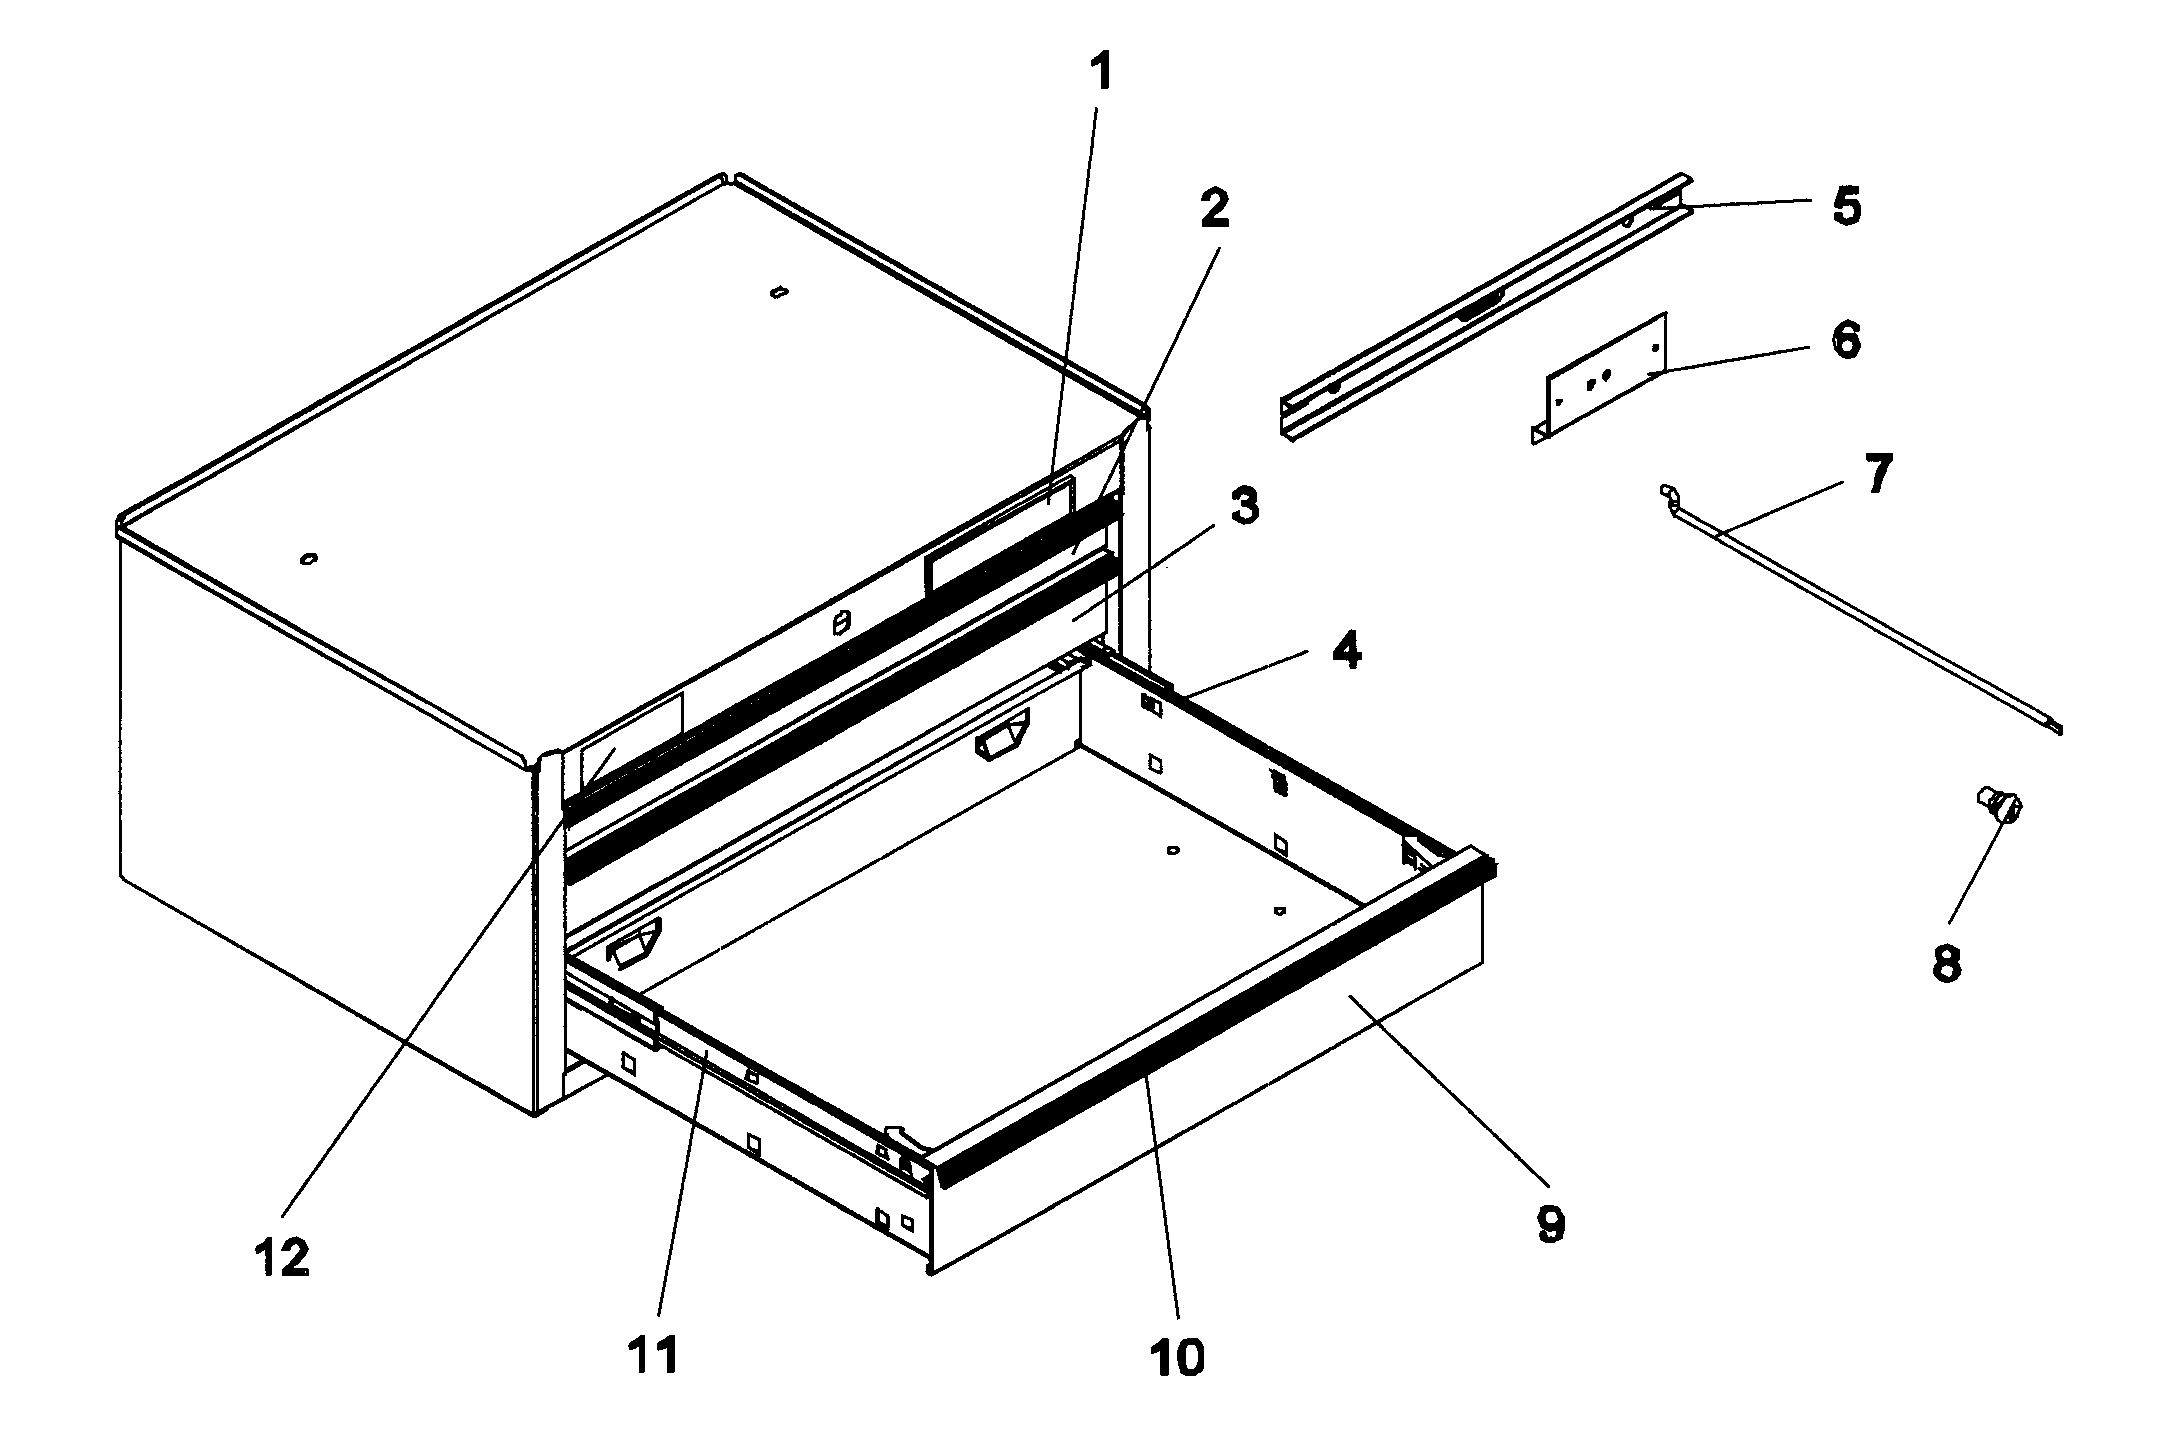 Craftsman 706825380 tool box diagram